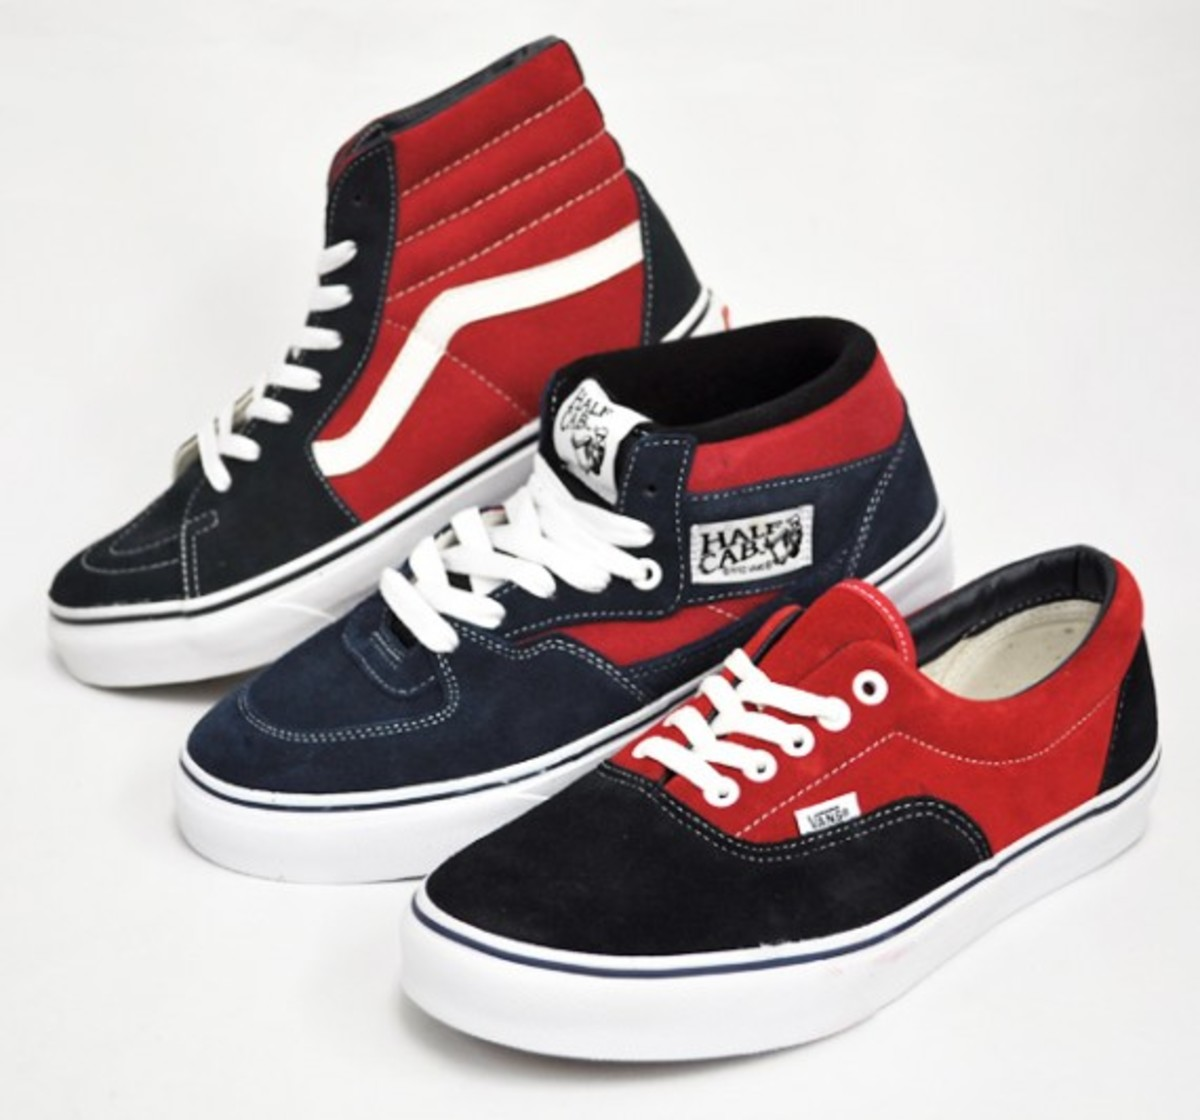 Reissue Pack Red